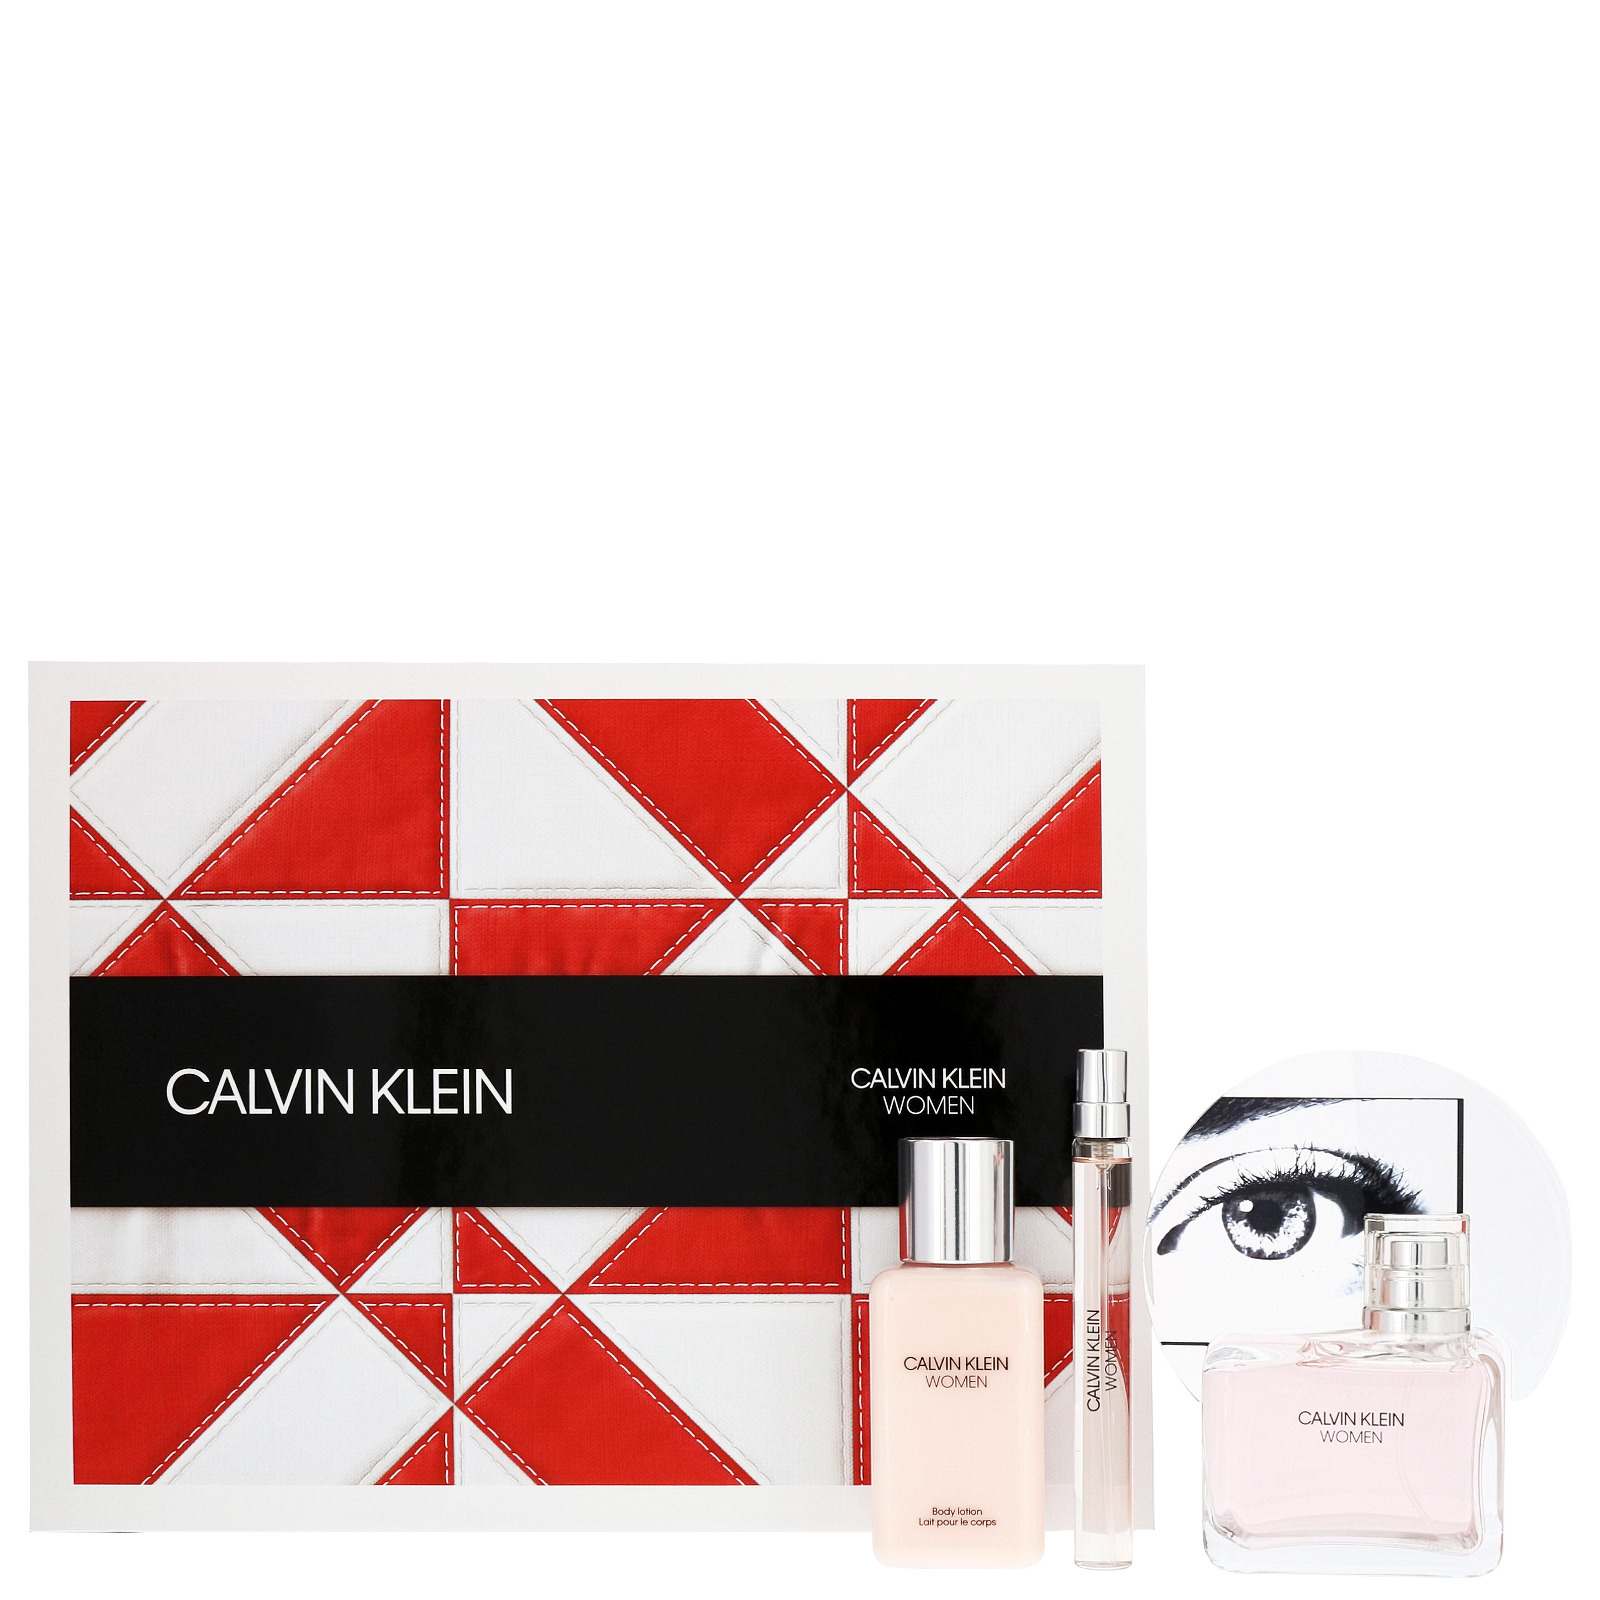 Calvin Klein Women Eau de Parfum Spray 100ml Gift Set